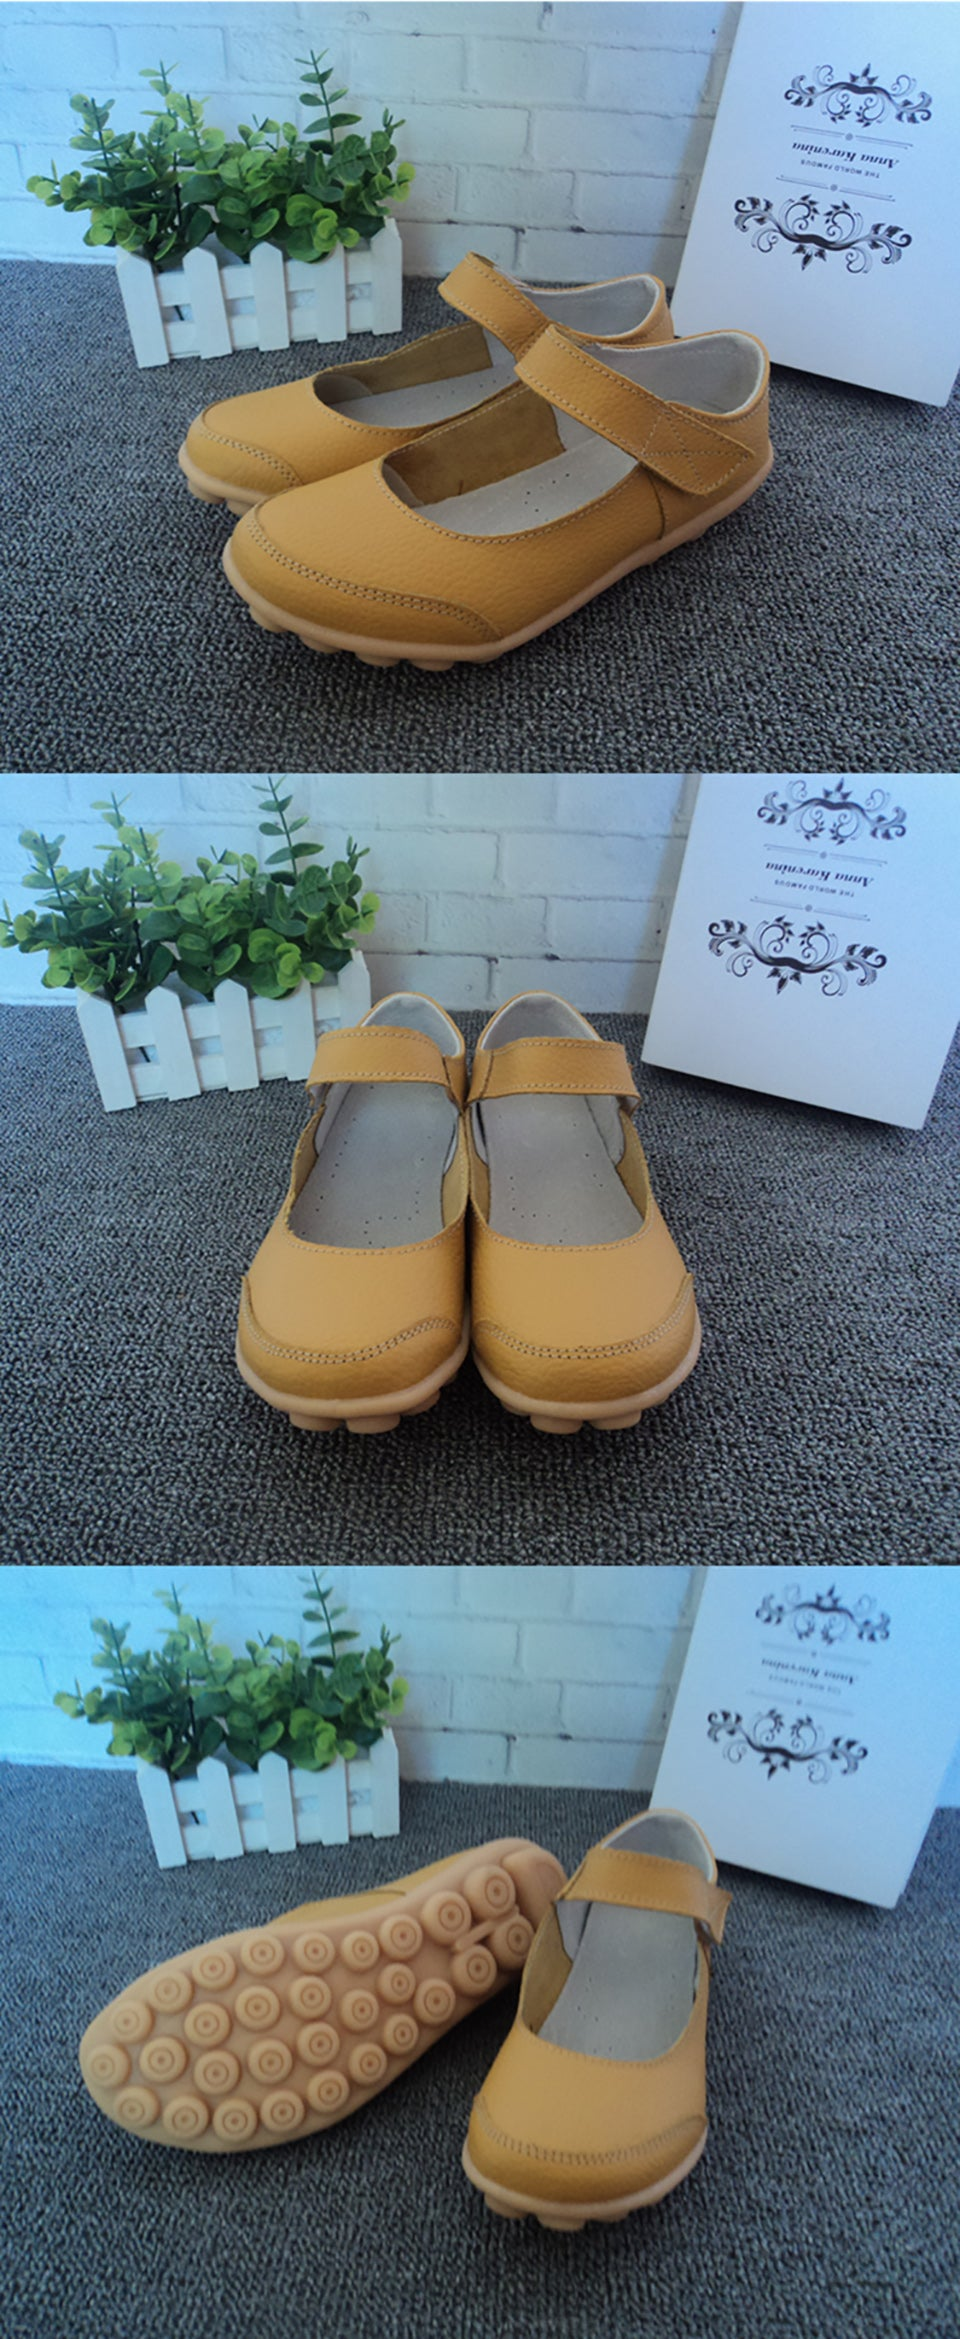 yellow mary jane nodule shoes with the velcro securing strap